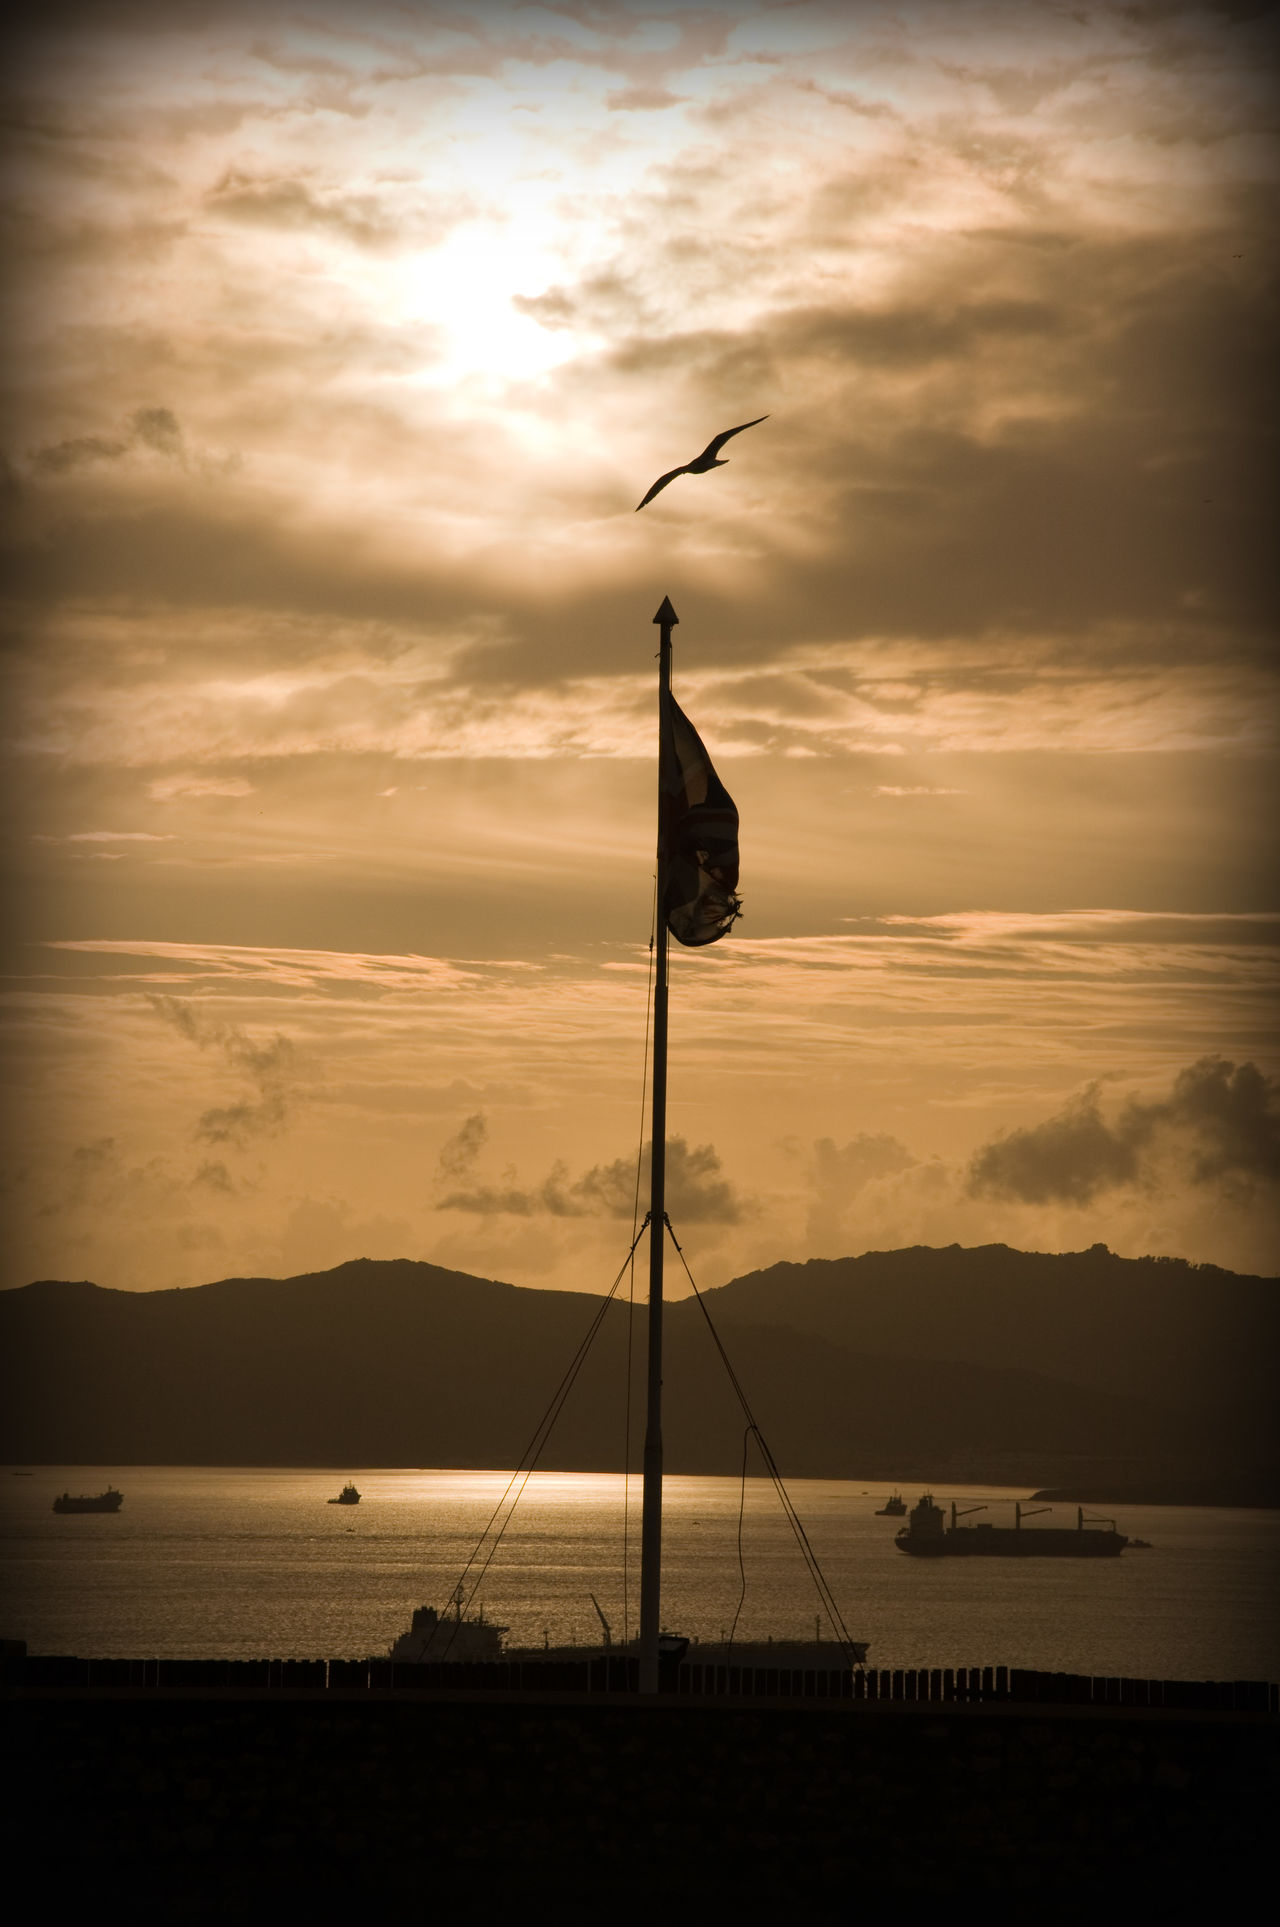 Animal Themes Beauty In Nature Bird Cloud - Sky Day Gibraltar Mast Moorish Moorish Castle Nature No People Outdoors Sailboat Scenics Sea Silhouette Sky Sunset Tranquil Scene Tranquility Water